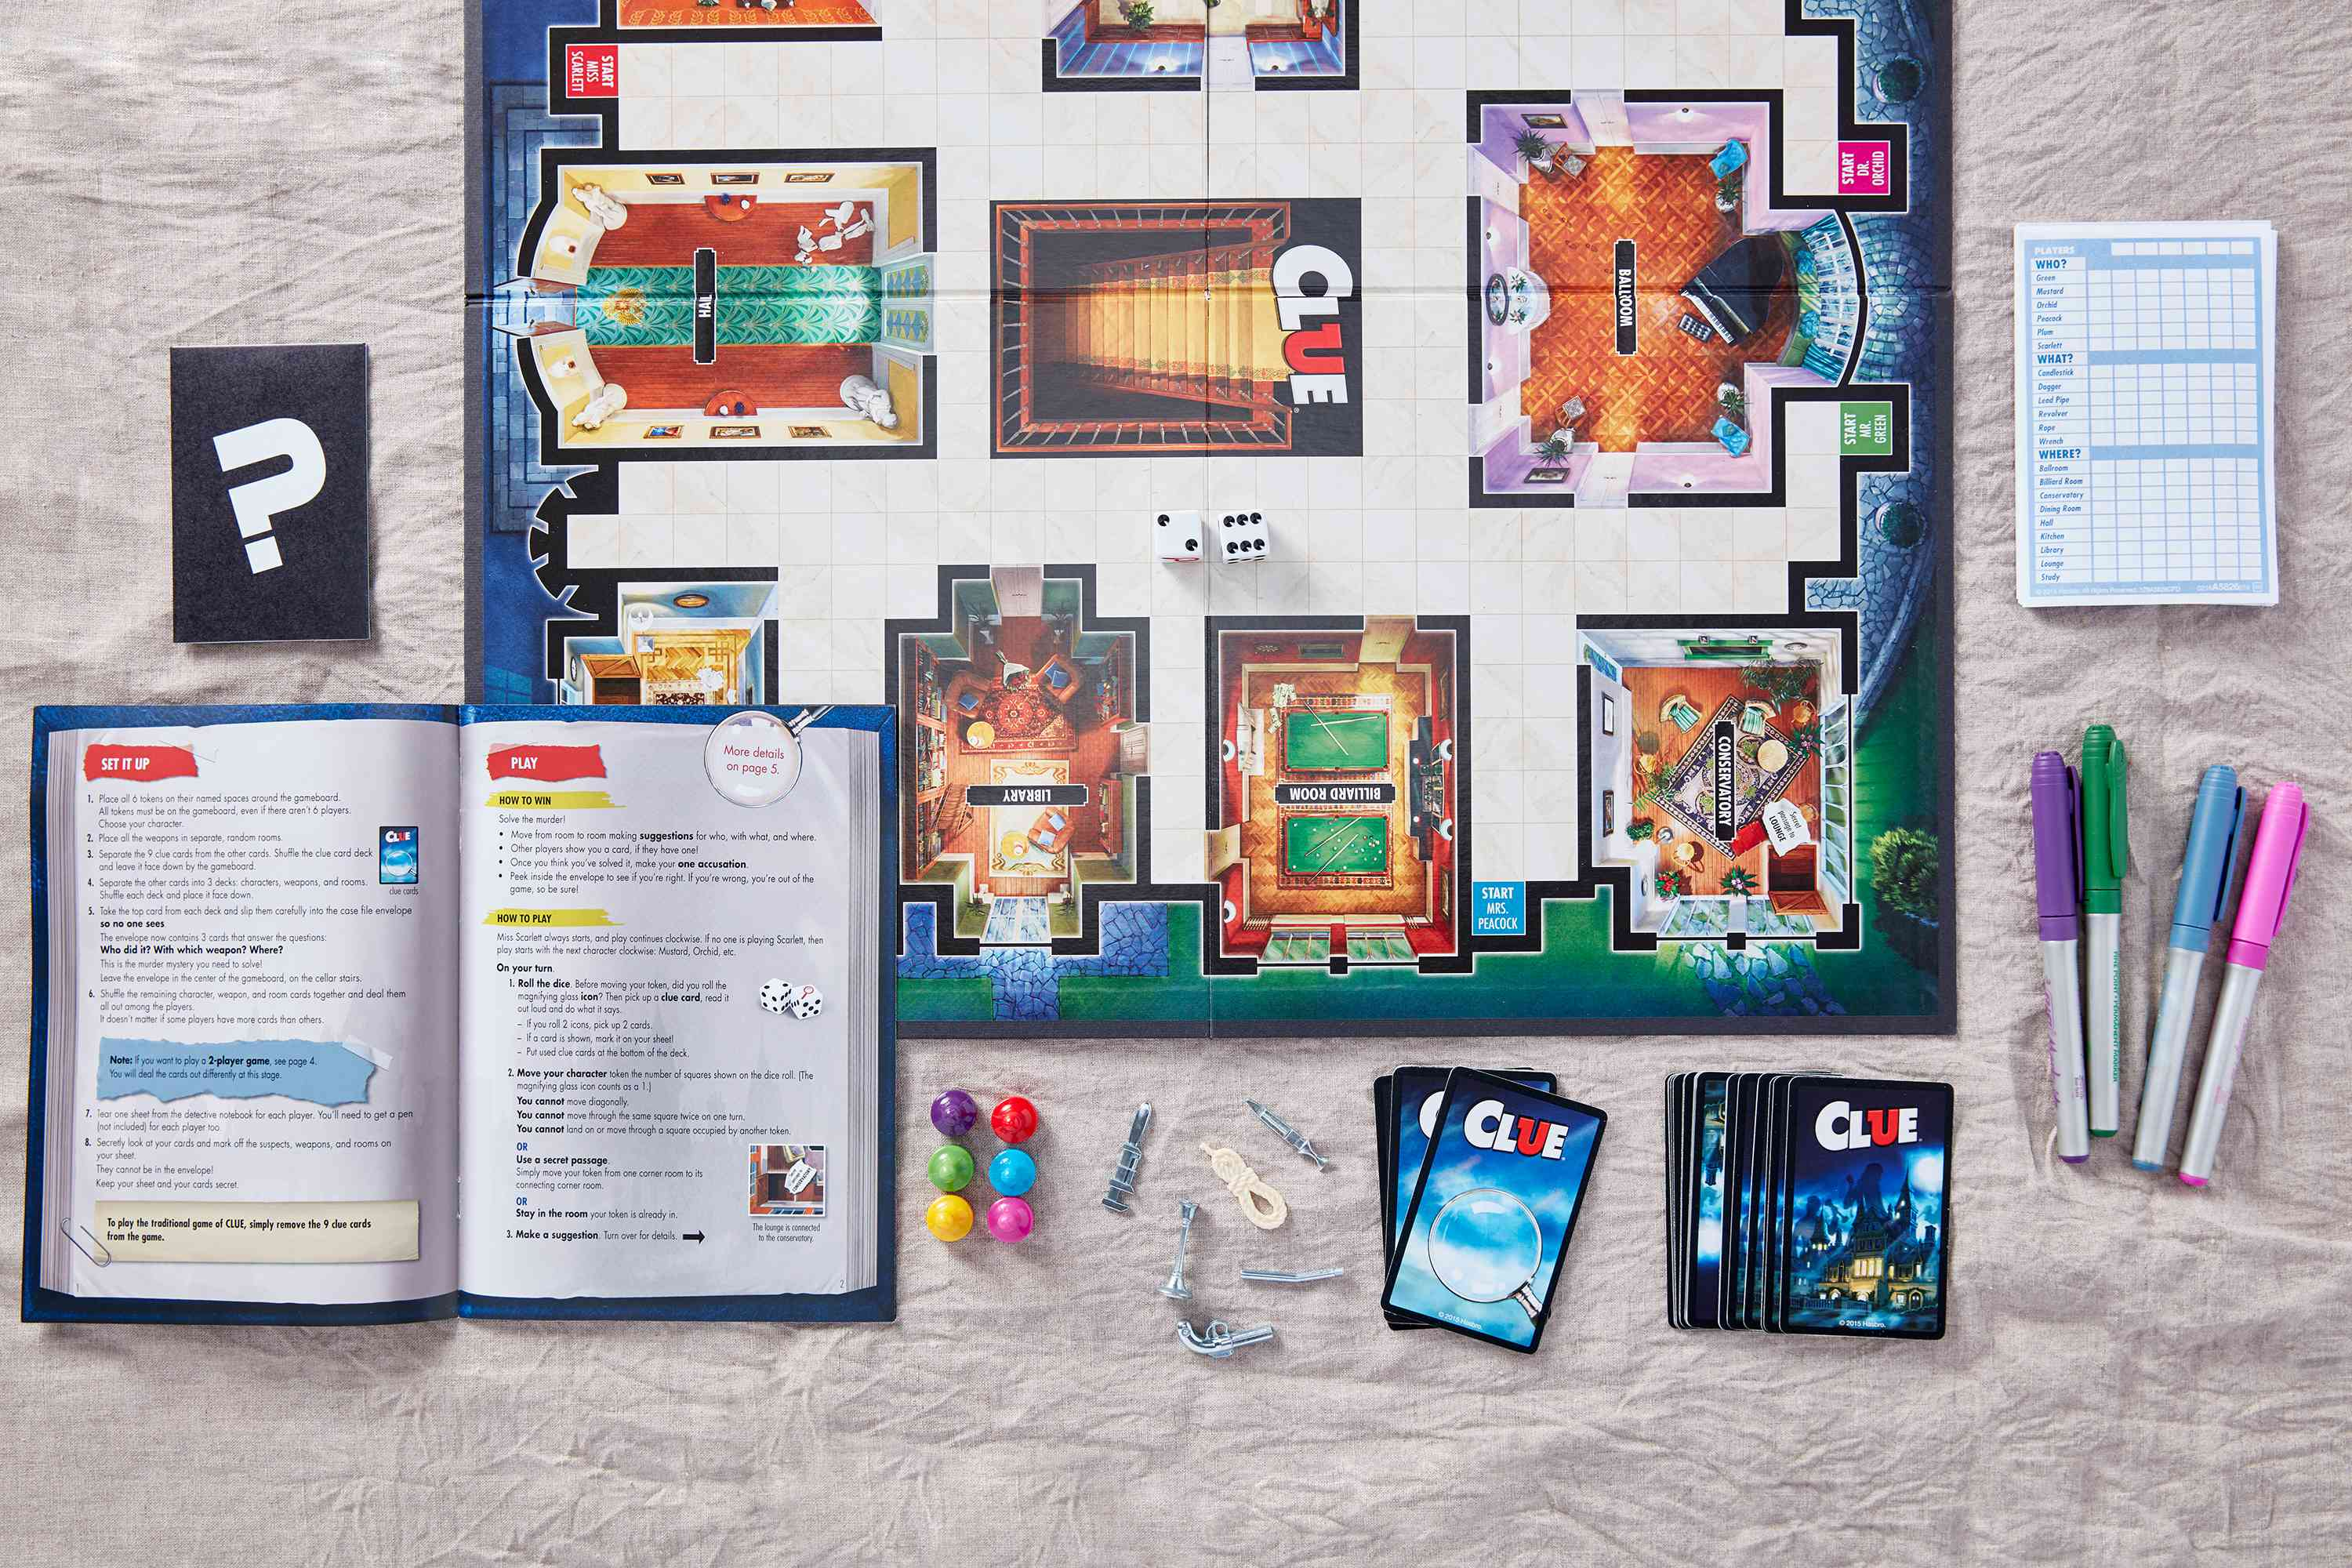 Materials needed for a game of clue